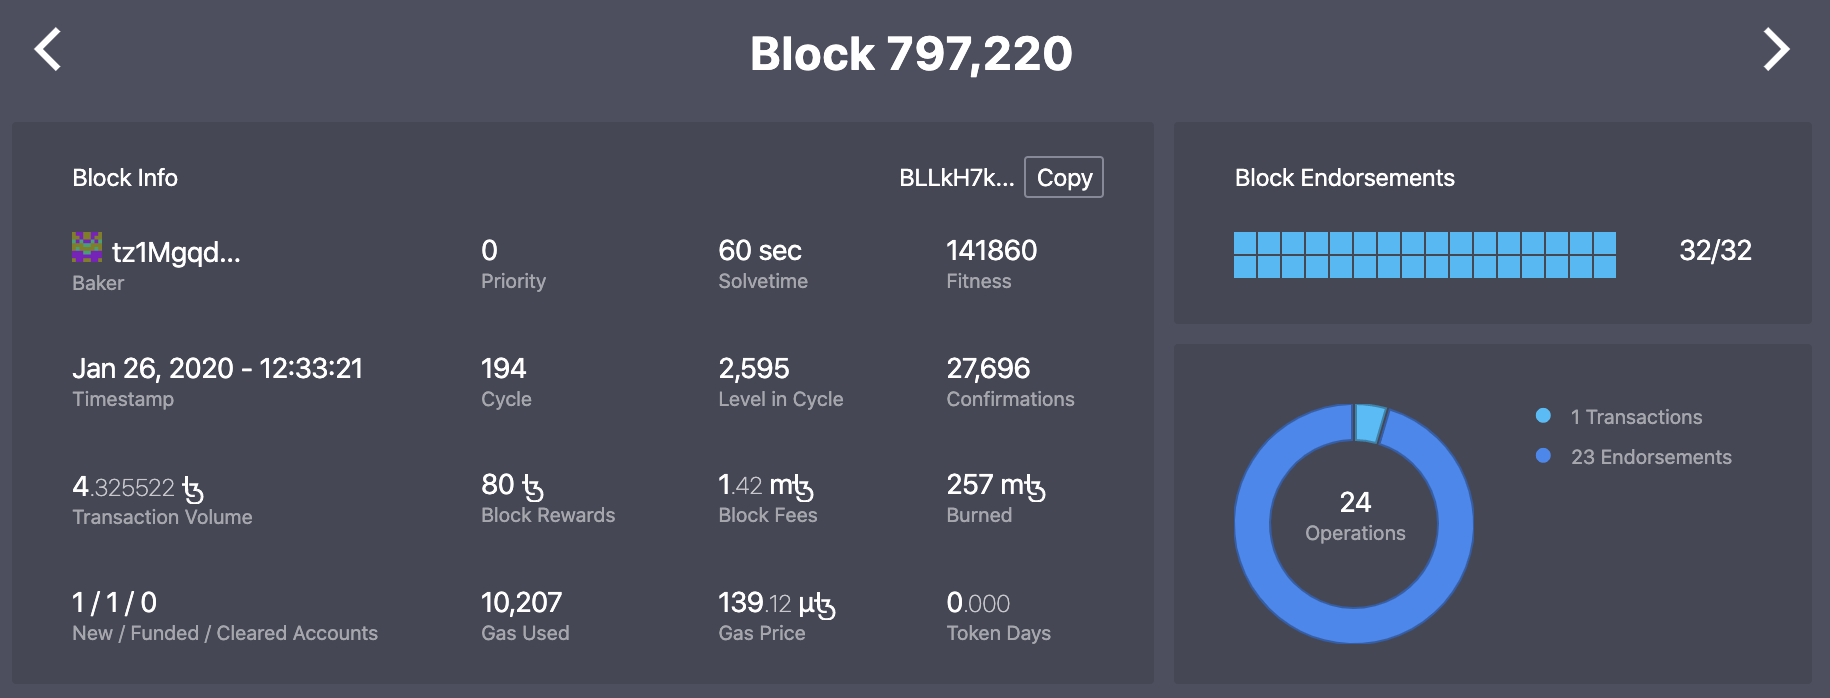 Block BLLkh7[…]SWjdTX8p on tzstats.com